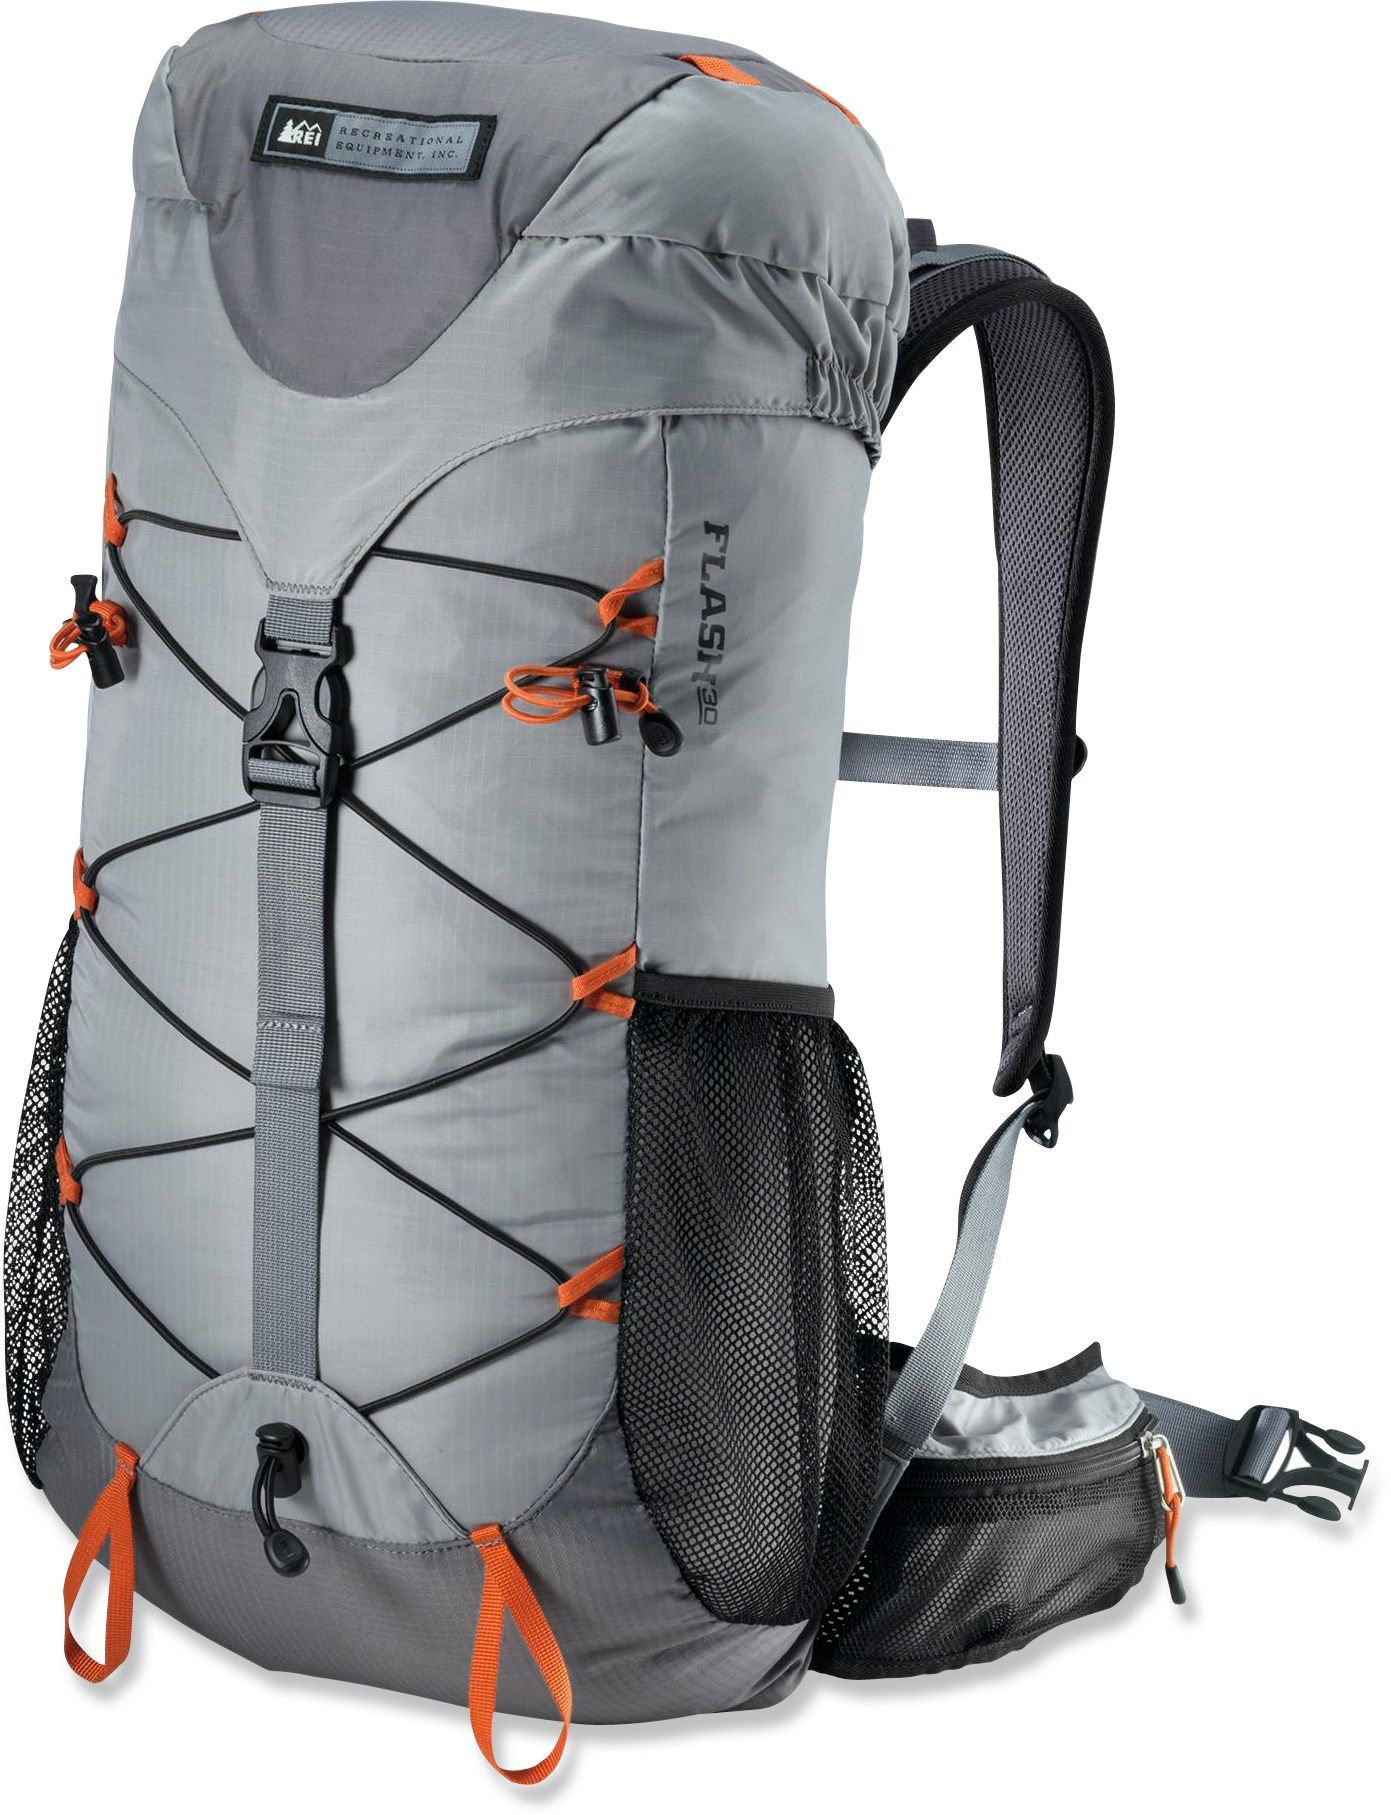 REI Flash 30 Pack wow, only $49.93! | Camping-trips | Pinterest ...